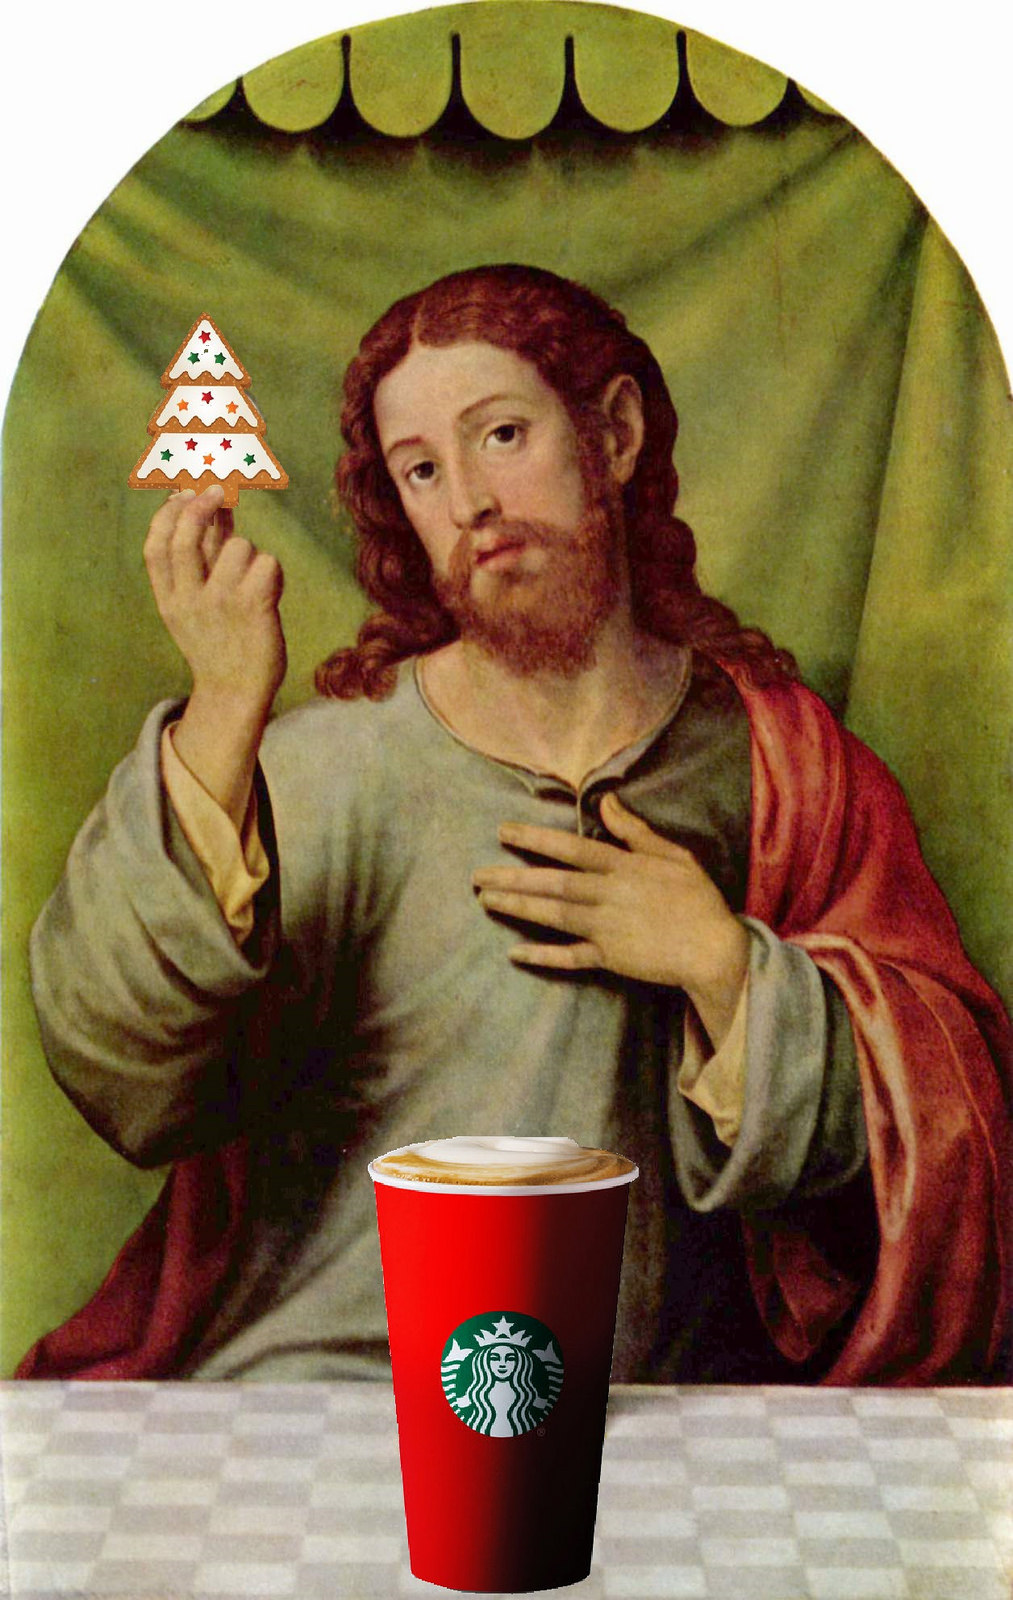 Christ patiently puts up with Starbucks' plain red cup design. Image by  Mike Licht via Flickr